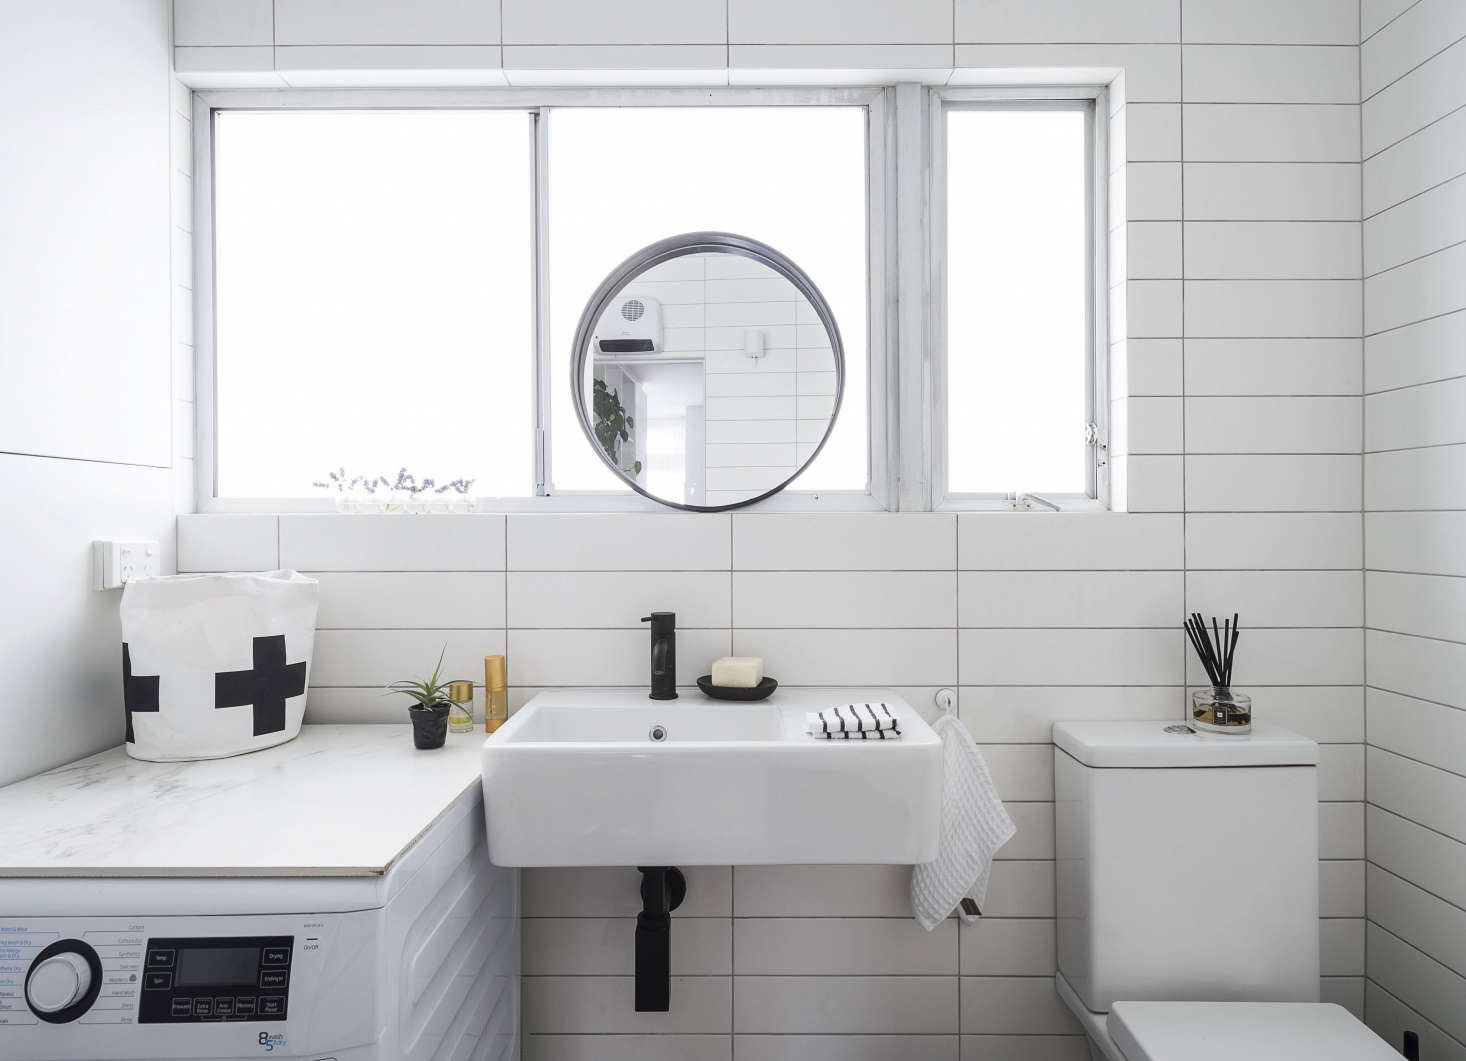 Spath removed a half-wall beside the toilet to open up the small bath. In lieu of a vanity, she sourced a wall-mounted sink (for something similar, see  Easy Pieces: Wall-Mounted Modern Square Bath Sinks), and topped the washing machine with a piece of marble from an old table that the client owned. Now it&#8